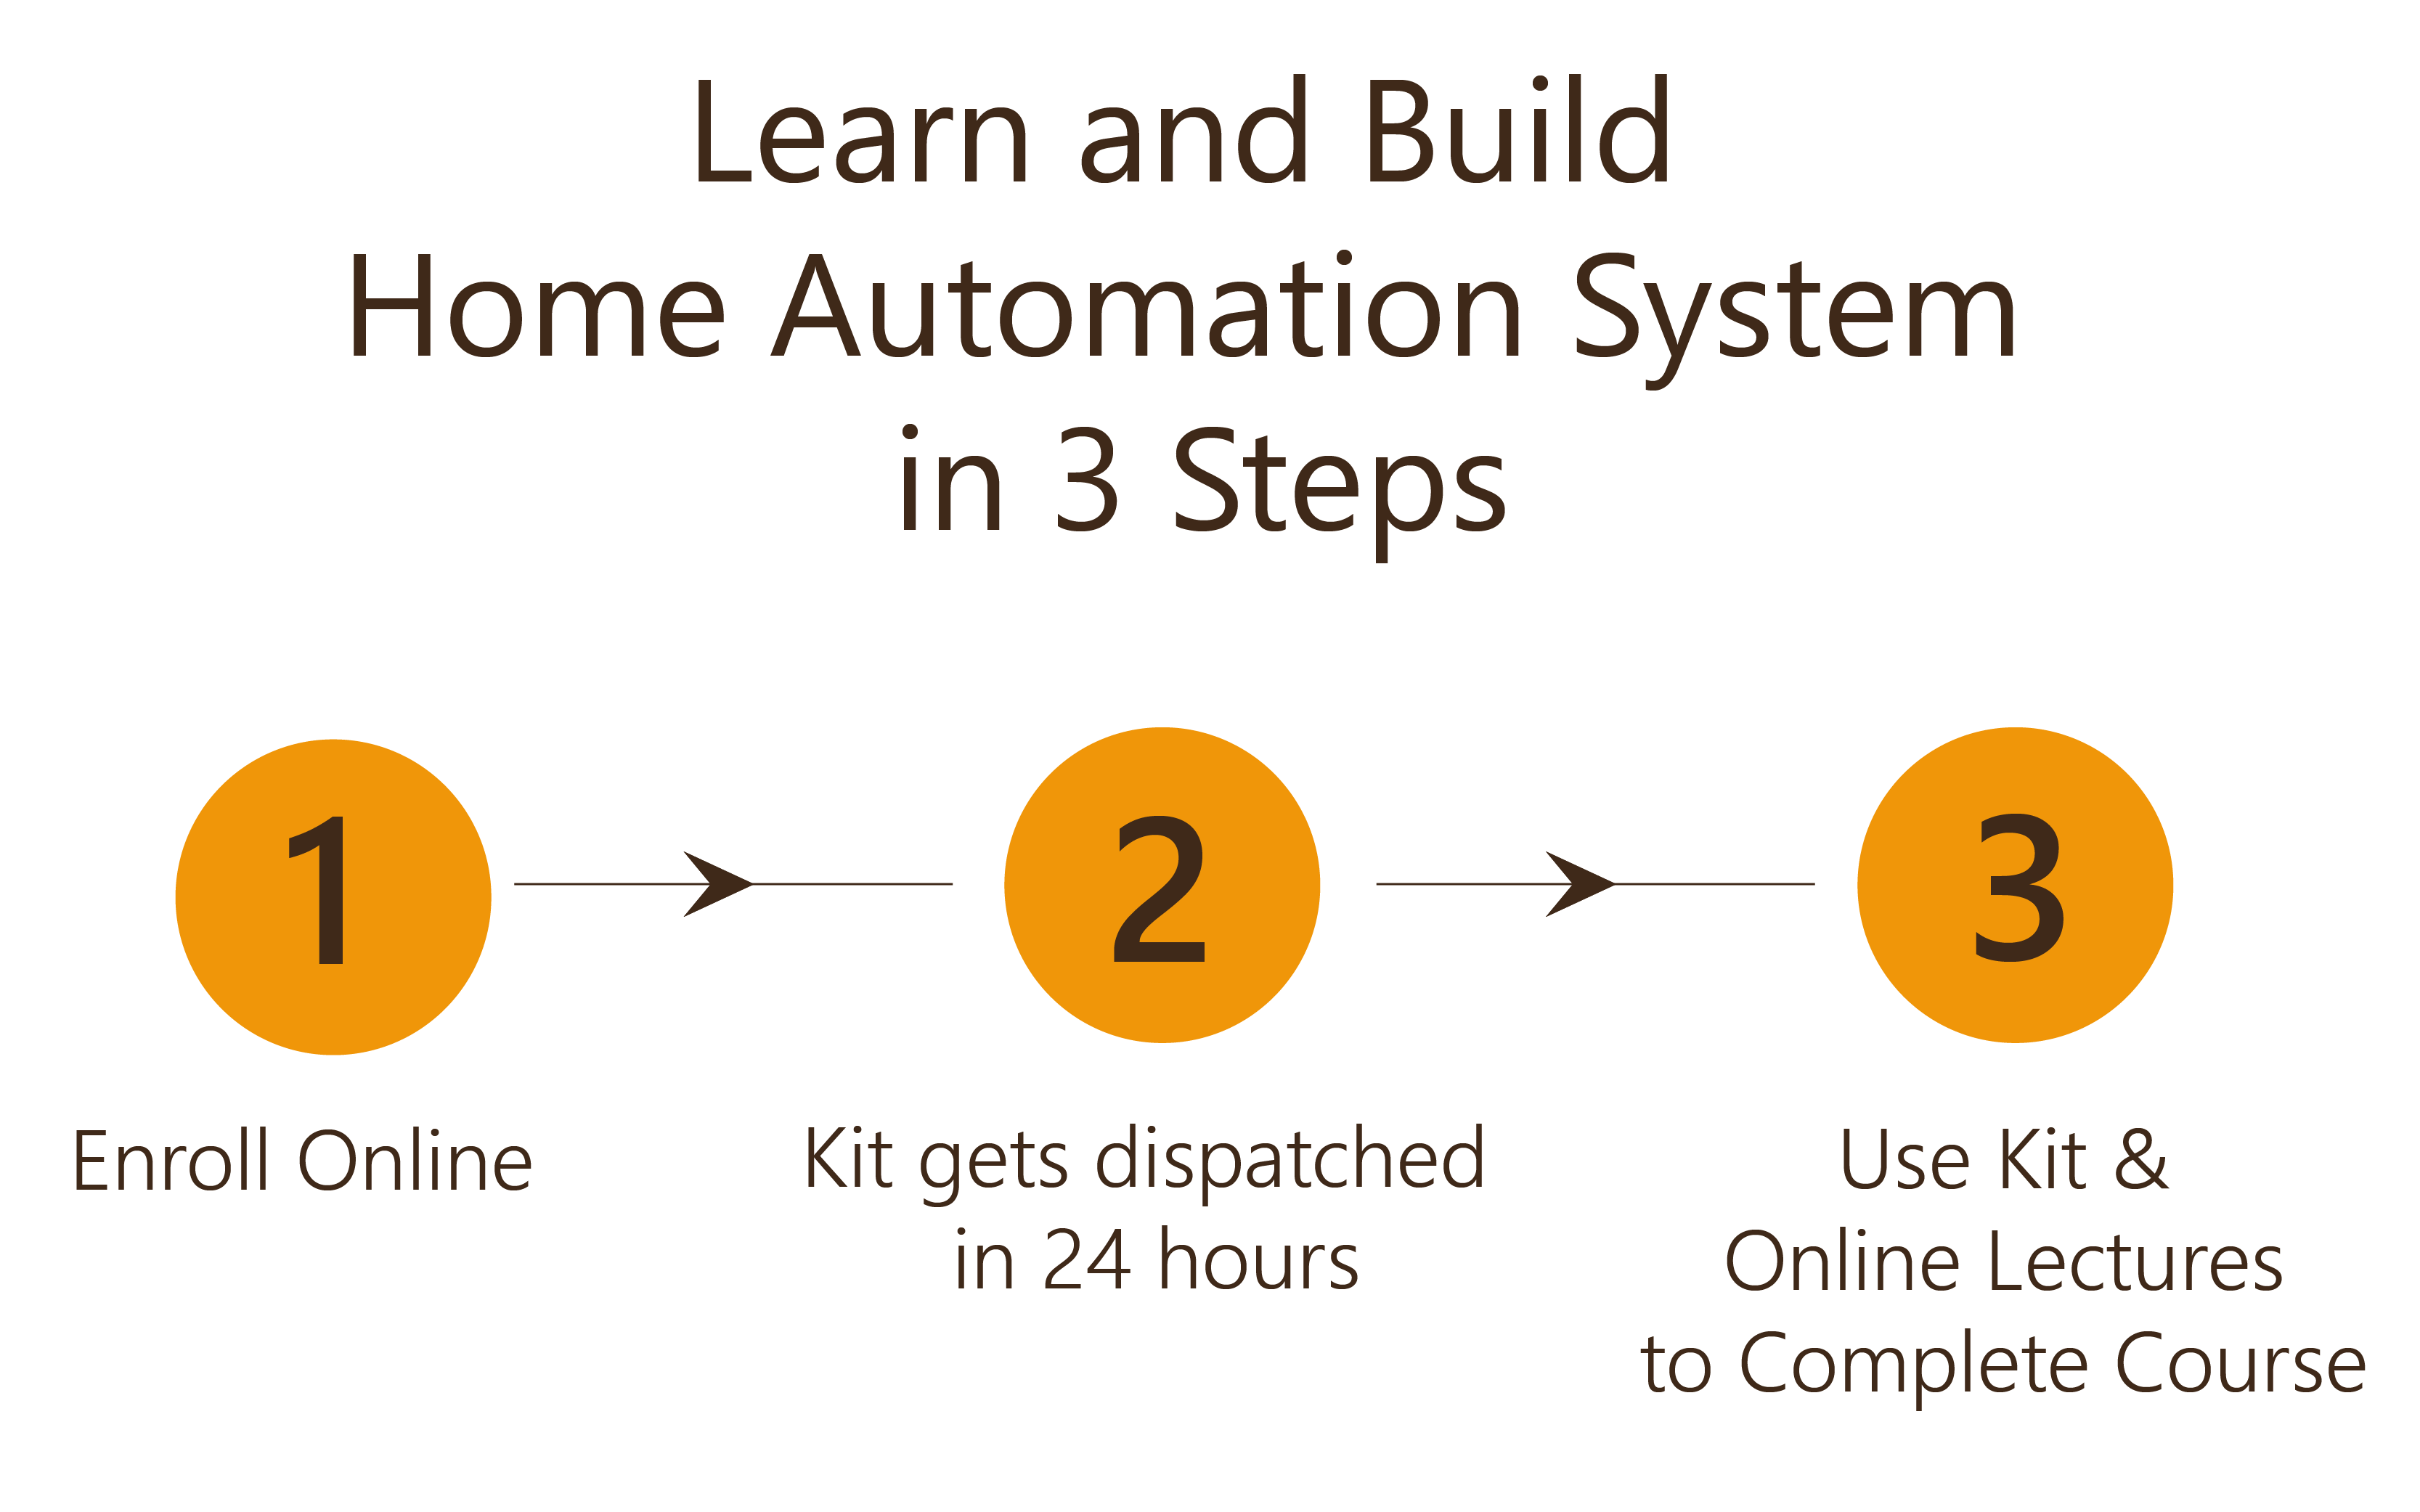 Learn and Build Home Automation System in 3 Steps